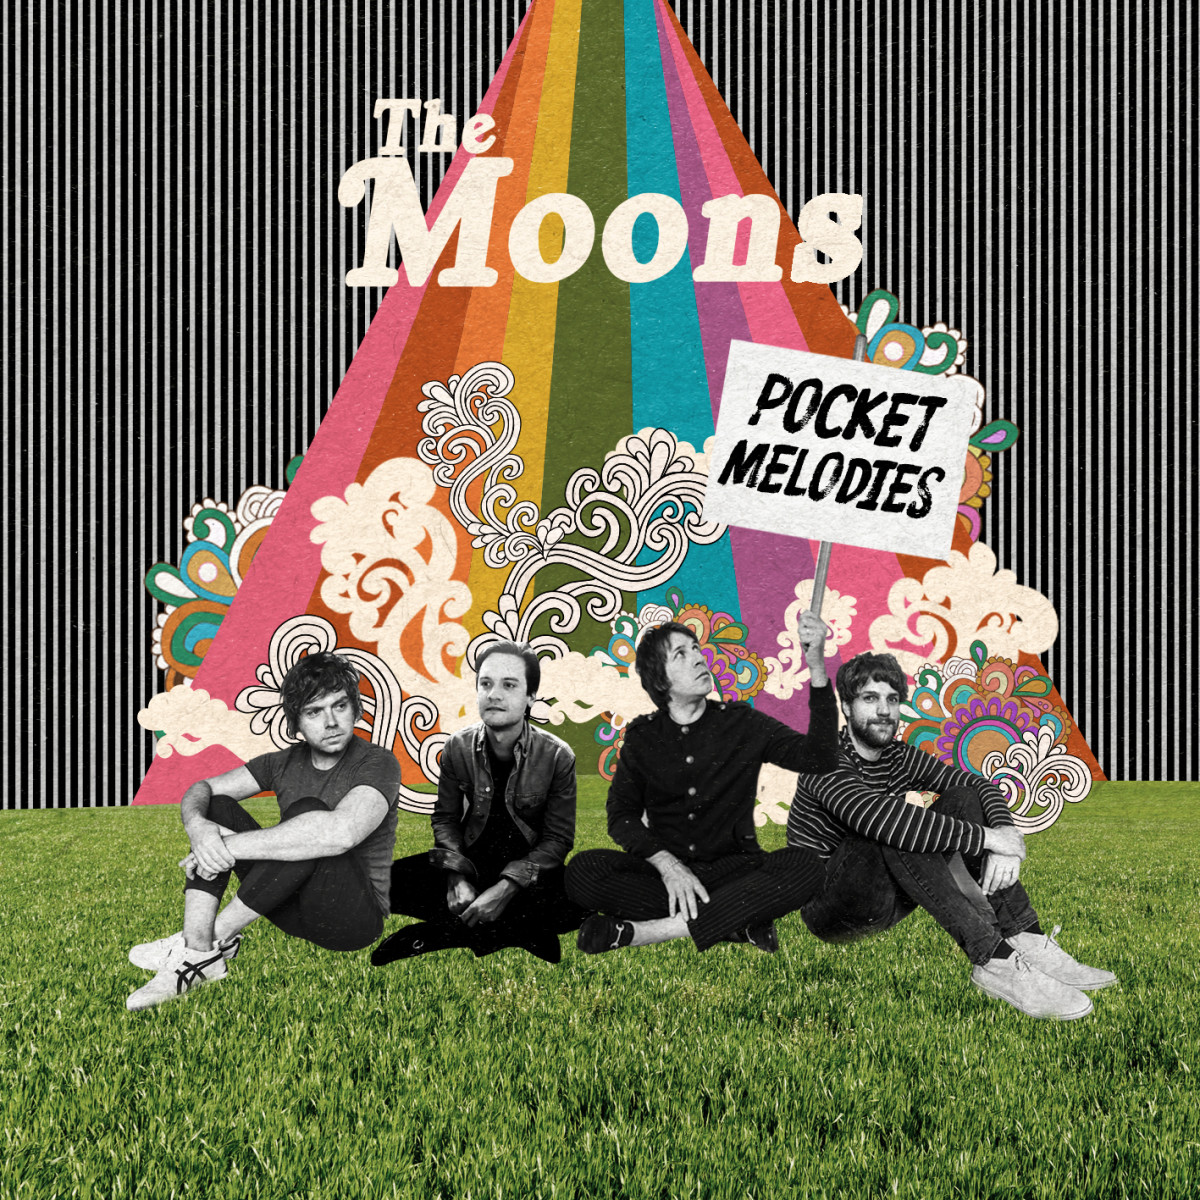 The Moons -- Pocket Melodies album cover